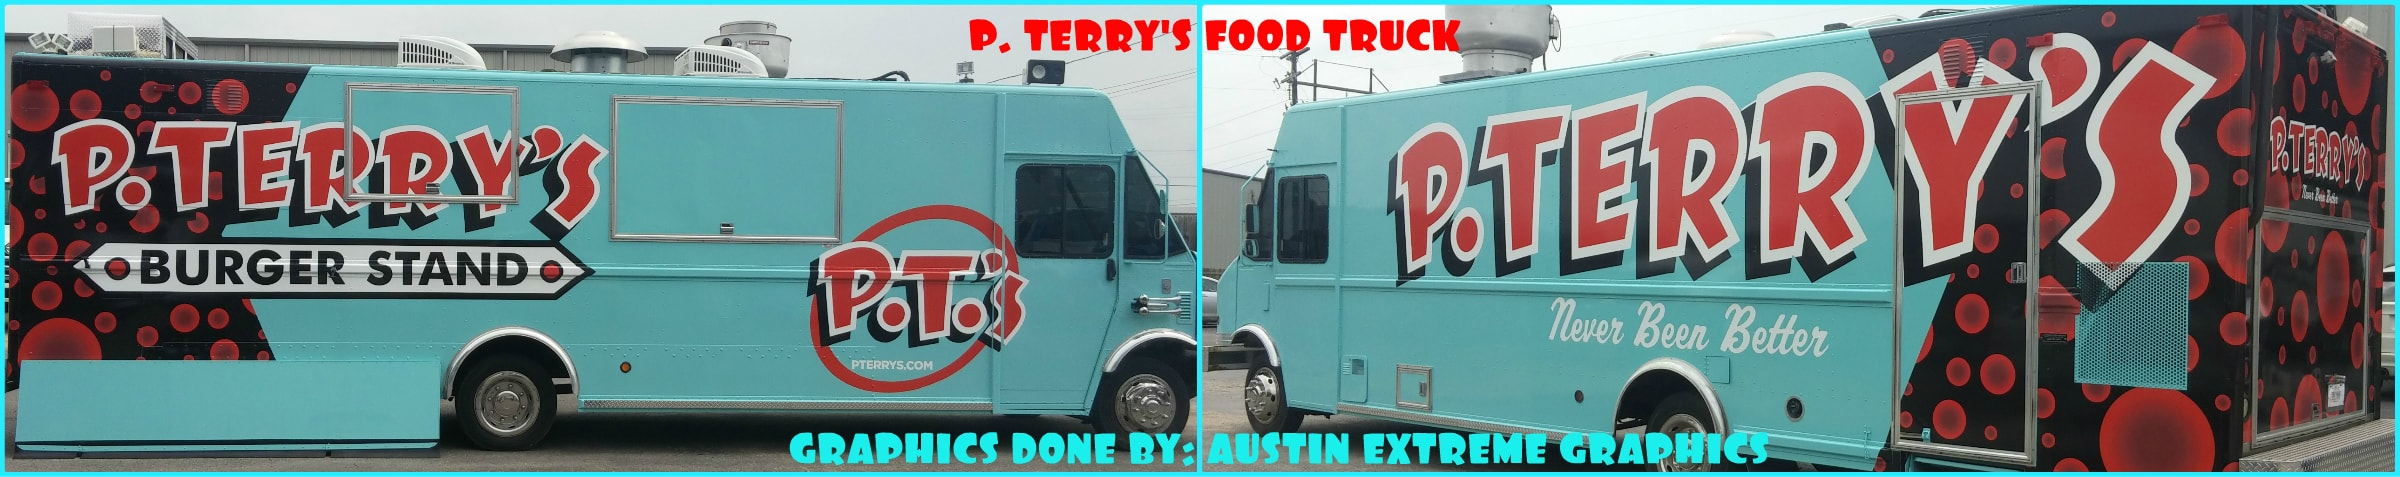 The side of the auto body paint for P. Terry's done by Central Texas Collision Services